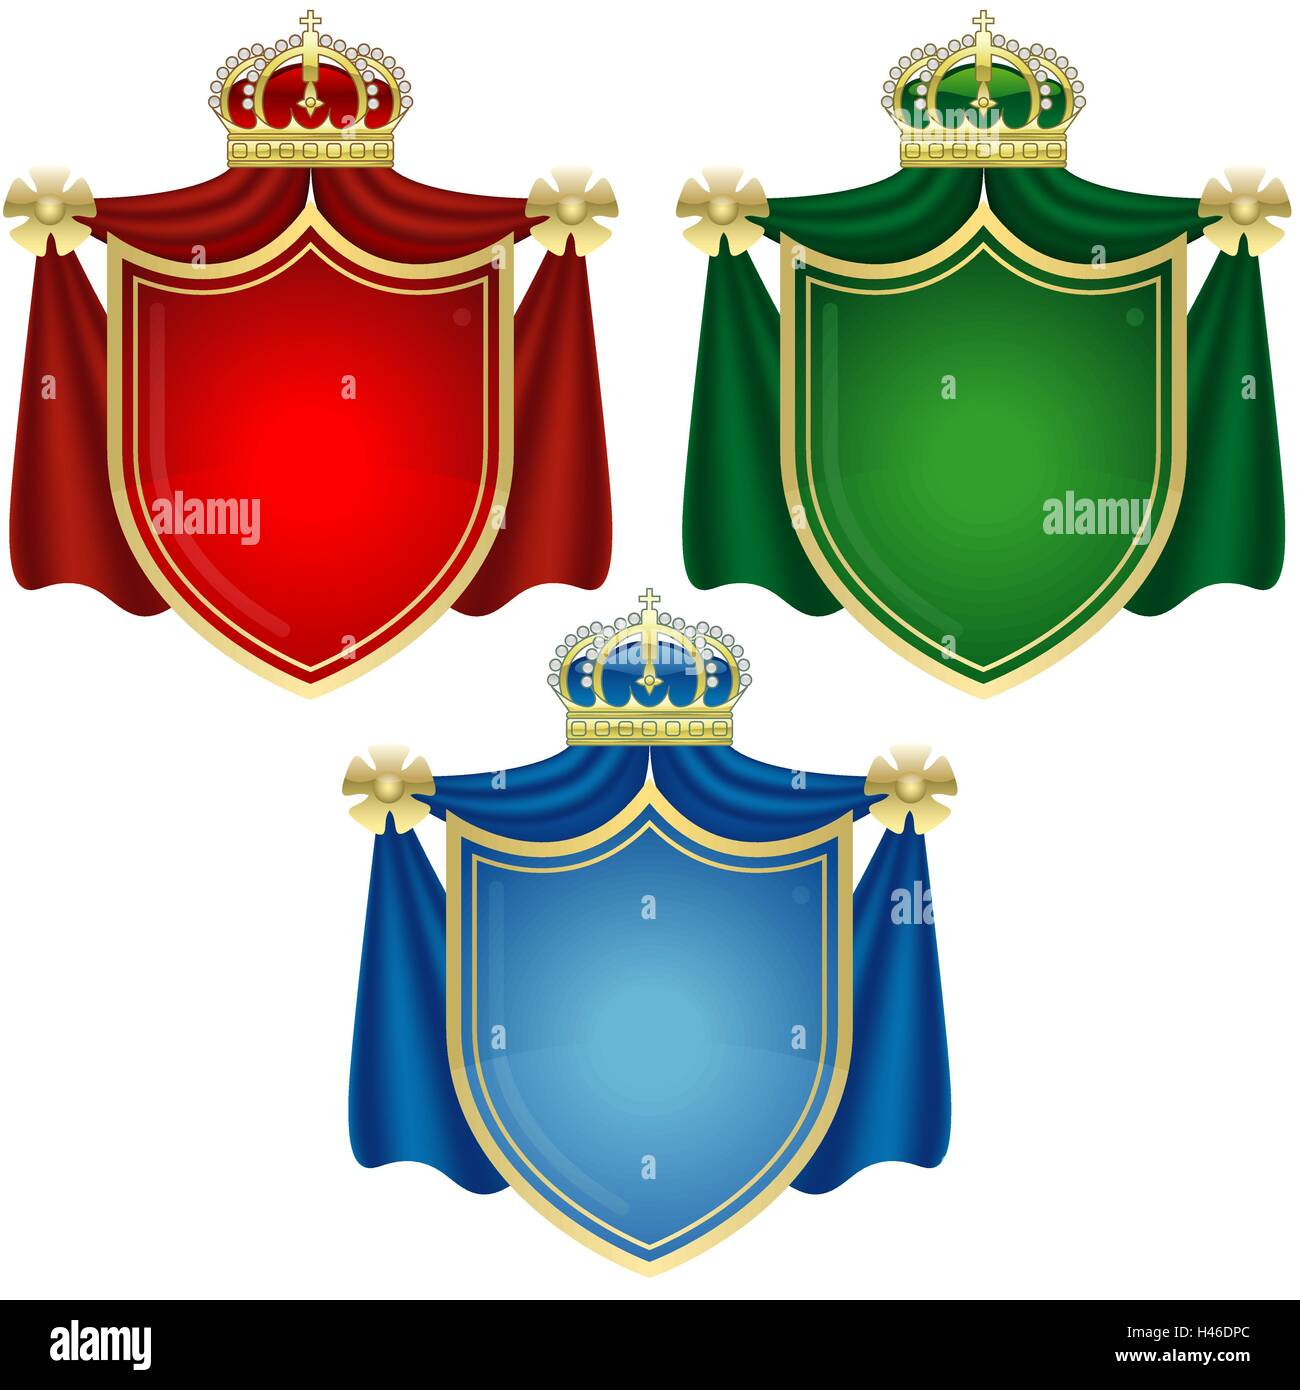 Royal Coat Of Arms Cut Out Stock Photos Amp Royal Coat Of